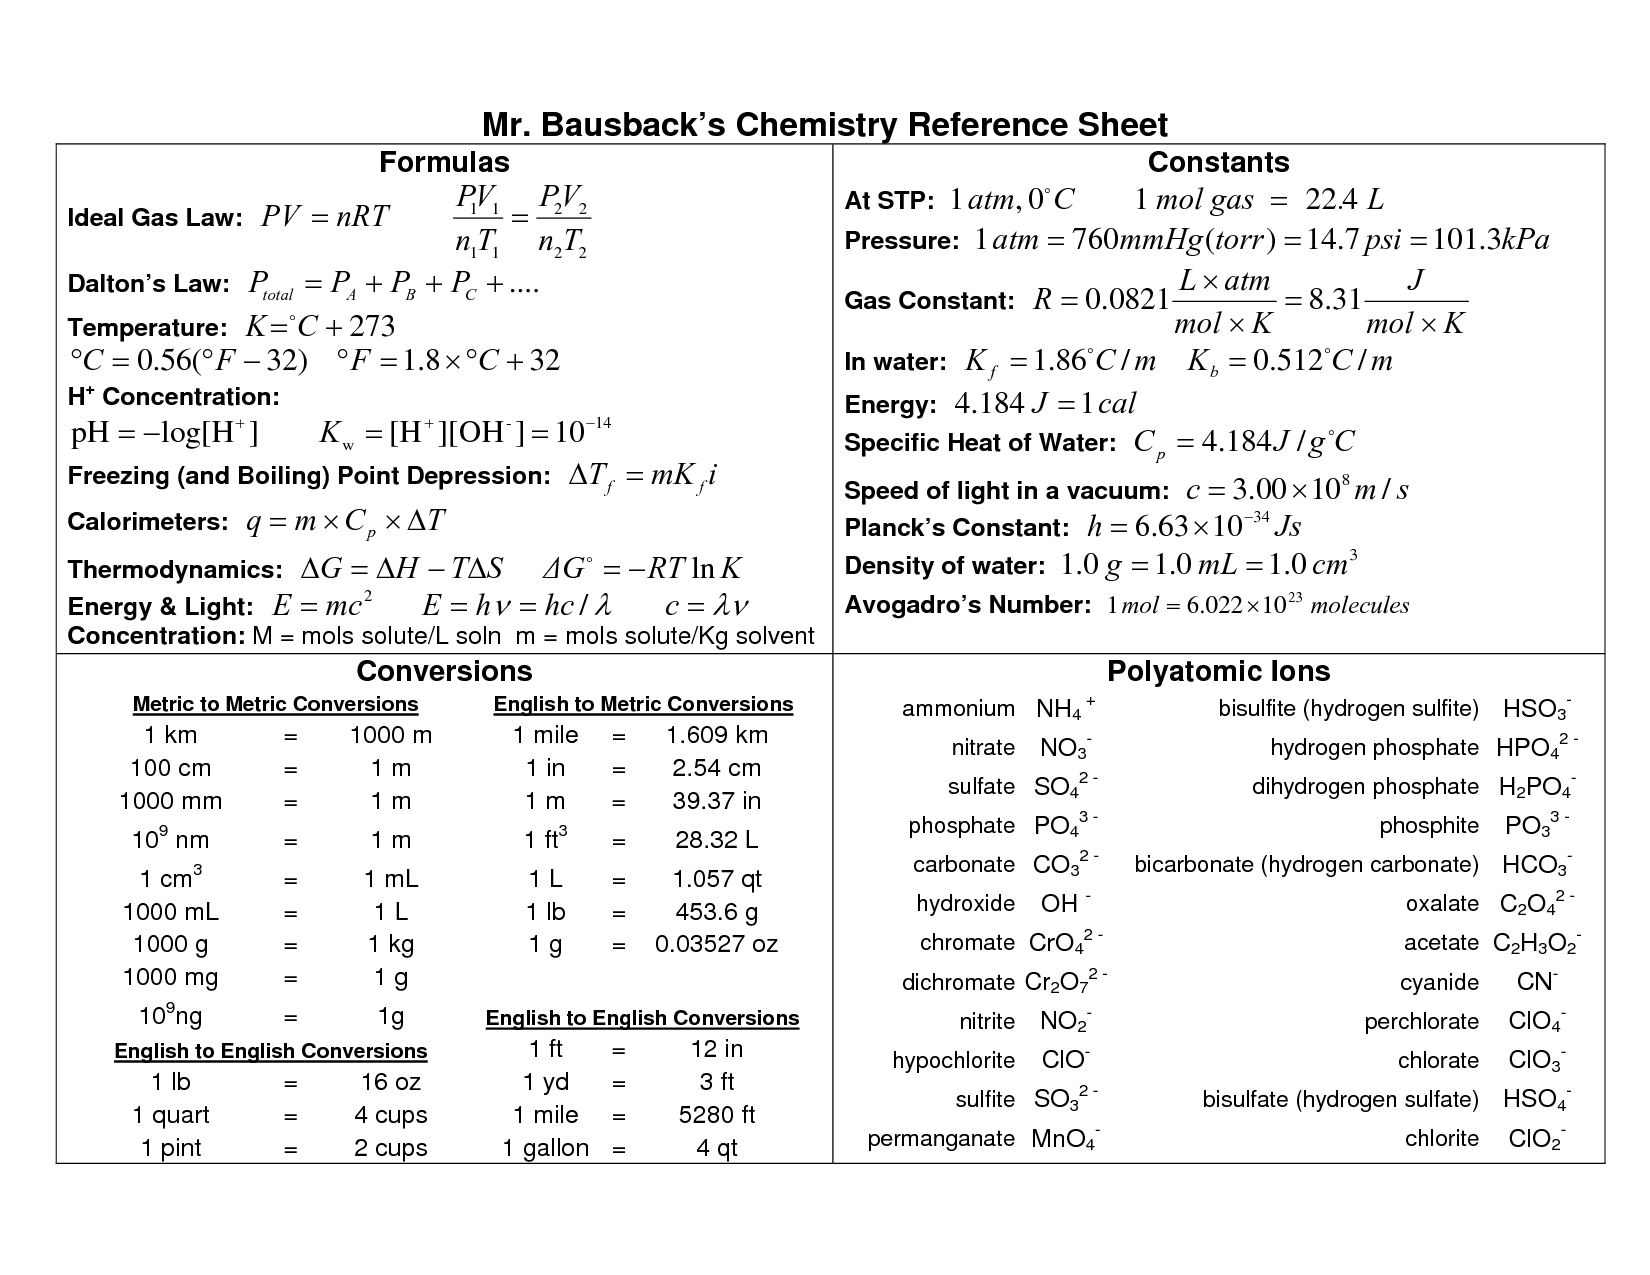 Chemistry Reference Sheet